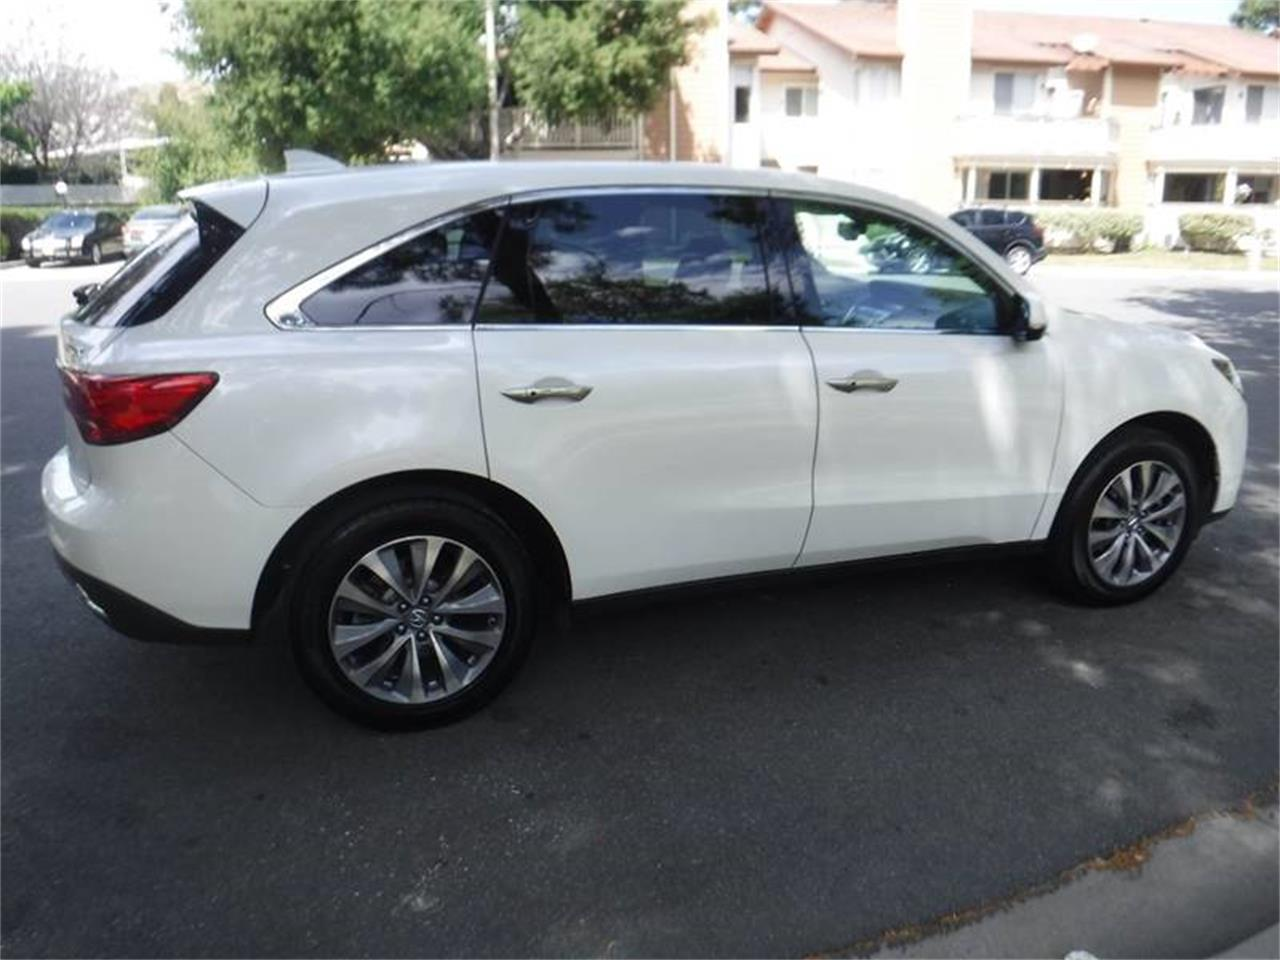 2014 Acura Mdx For Sale >> For Sale 2014 Acura Mdx In Thousand Oaks California